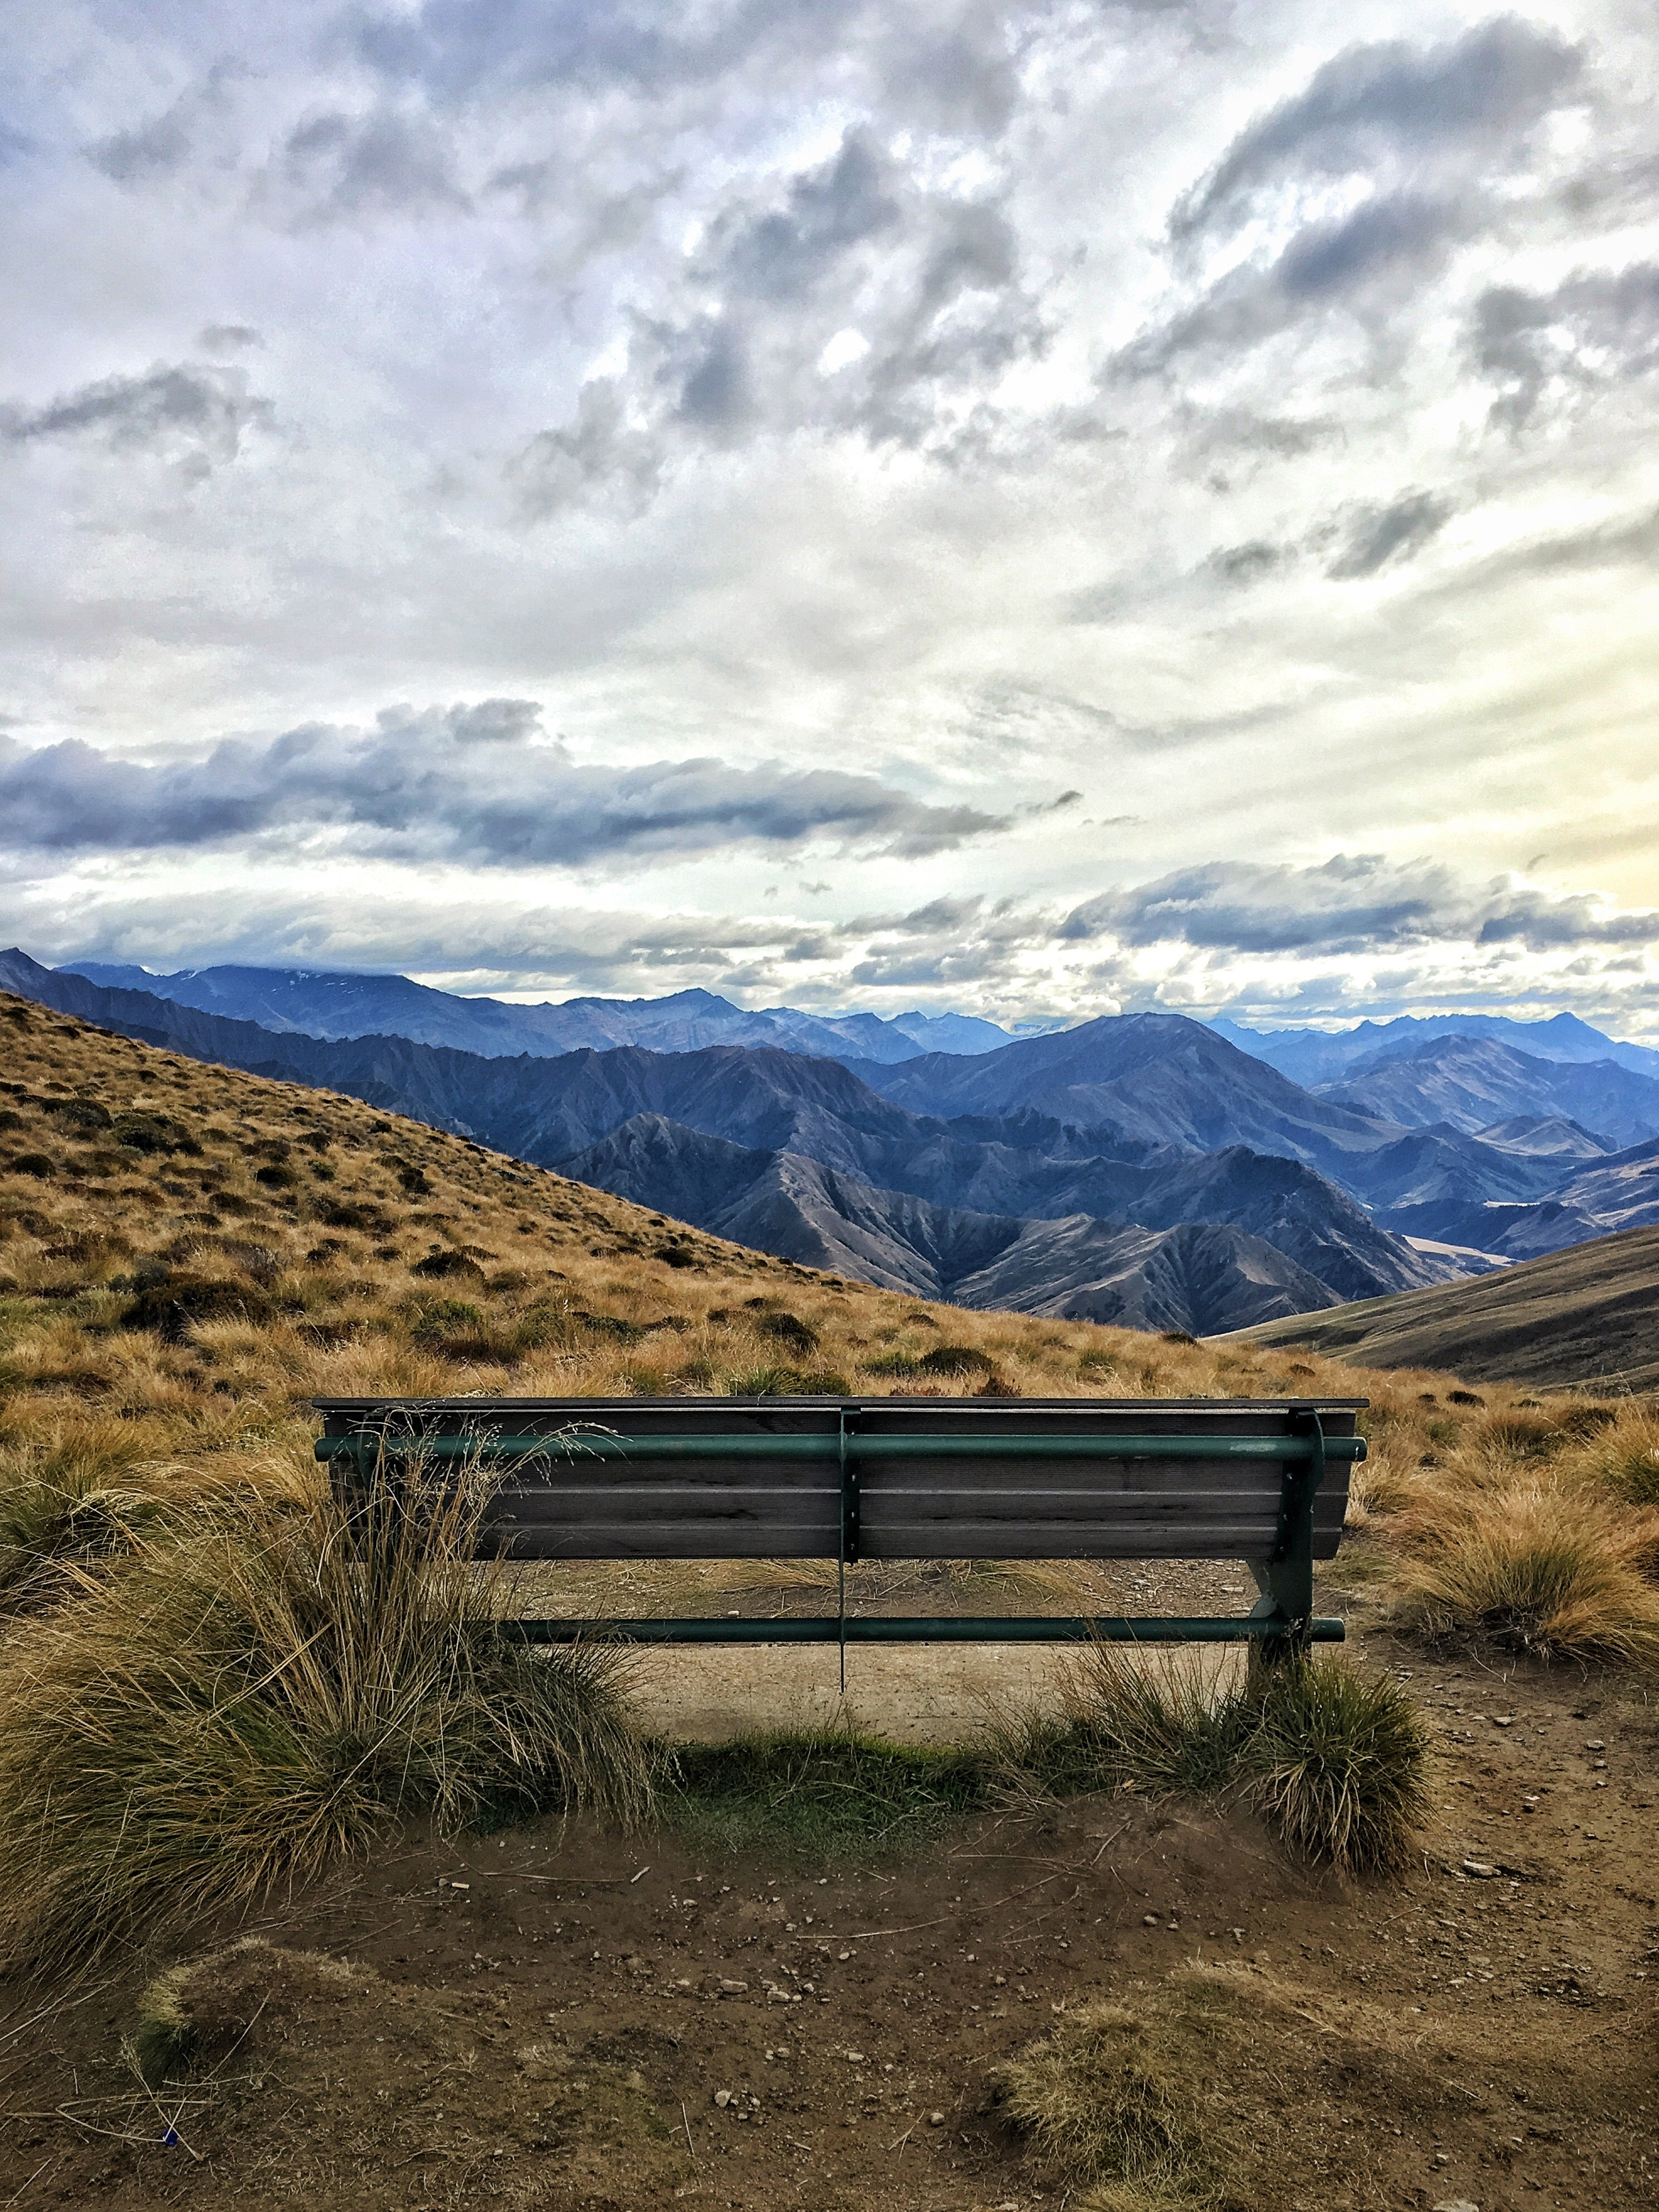 // Rest stop at the Saddle, looking North onto the Southern Alps